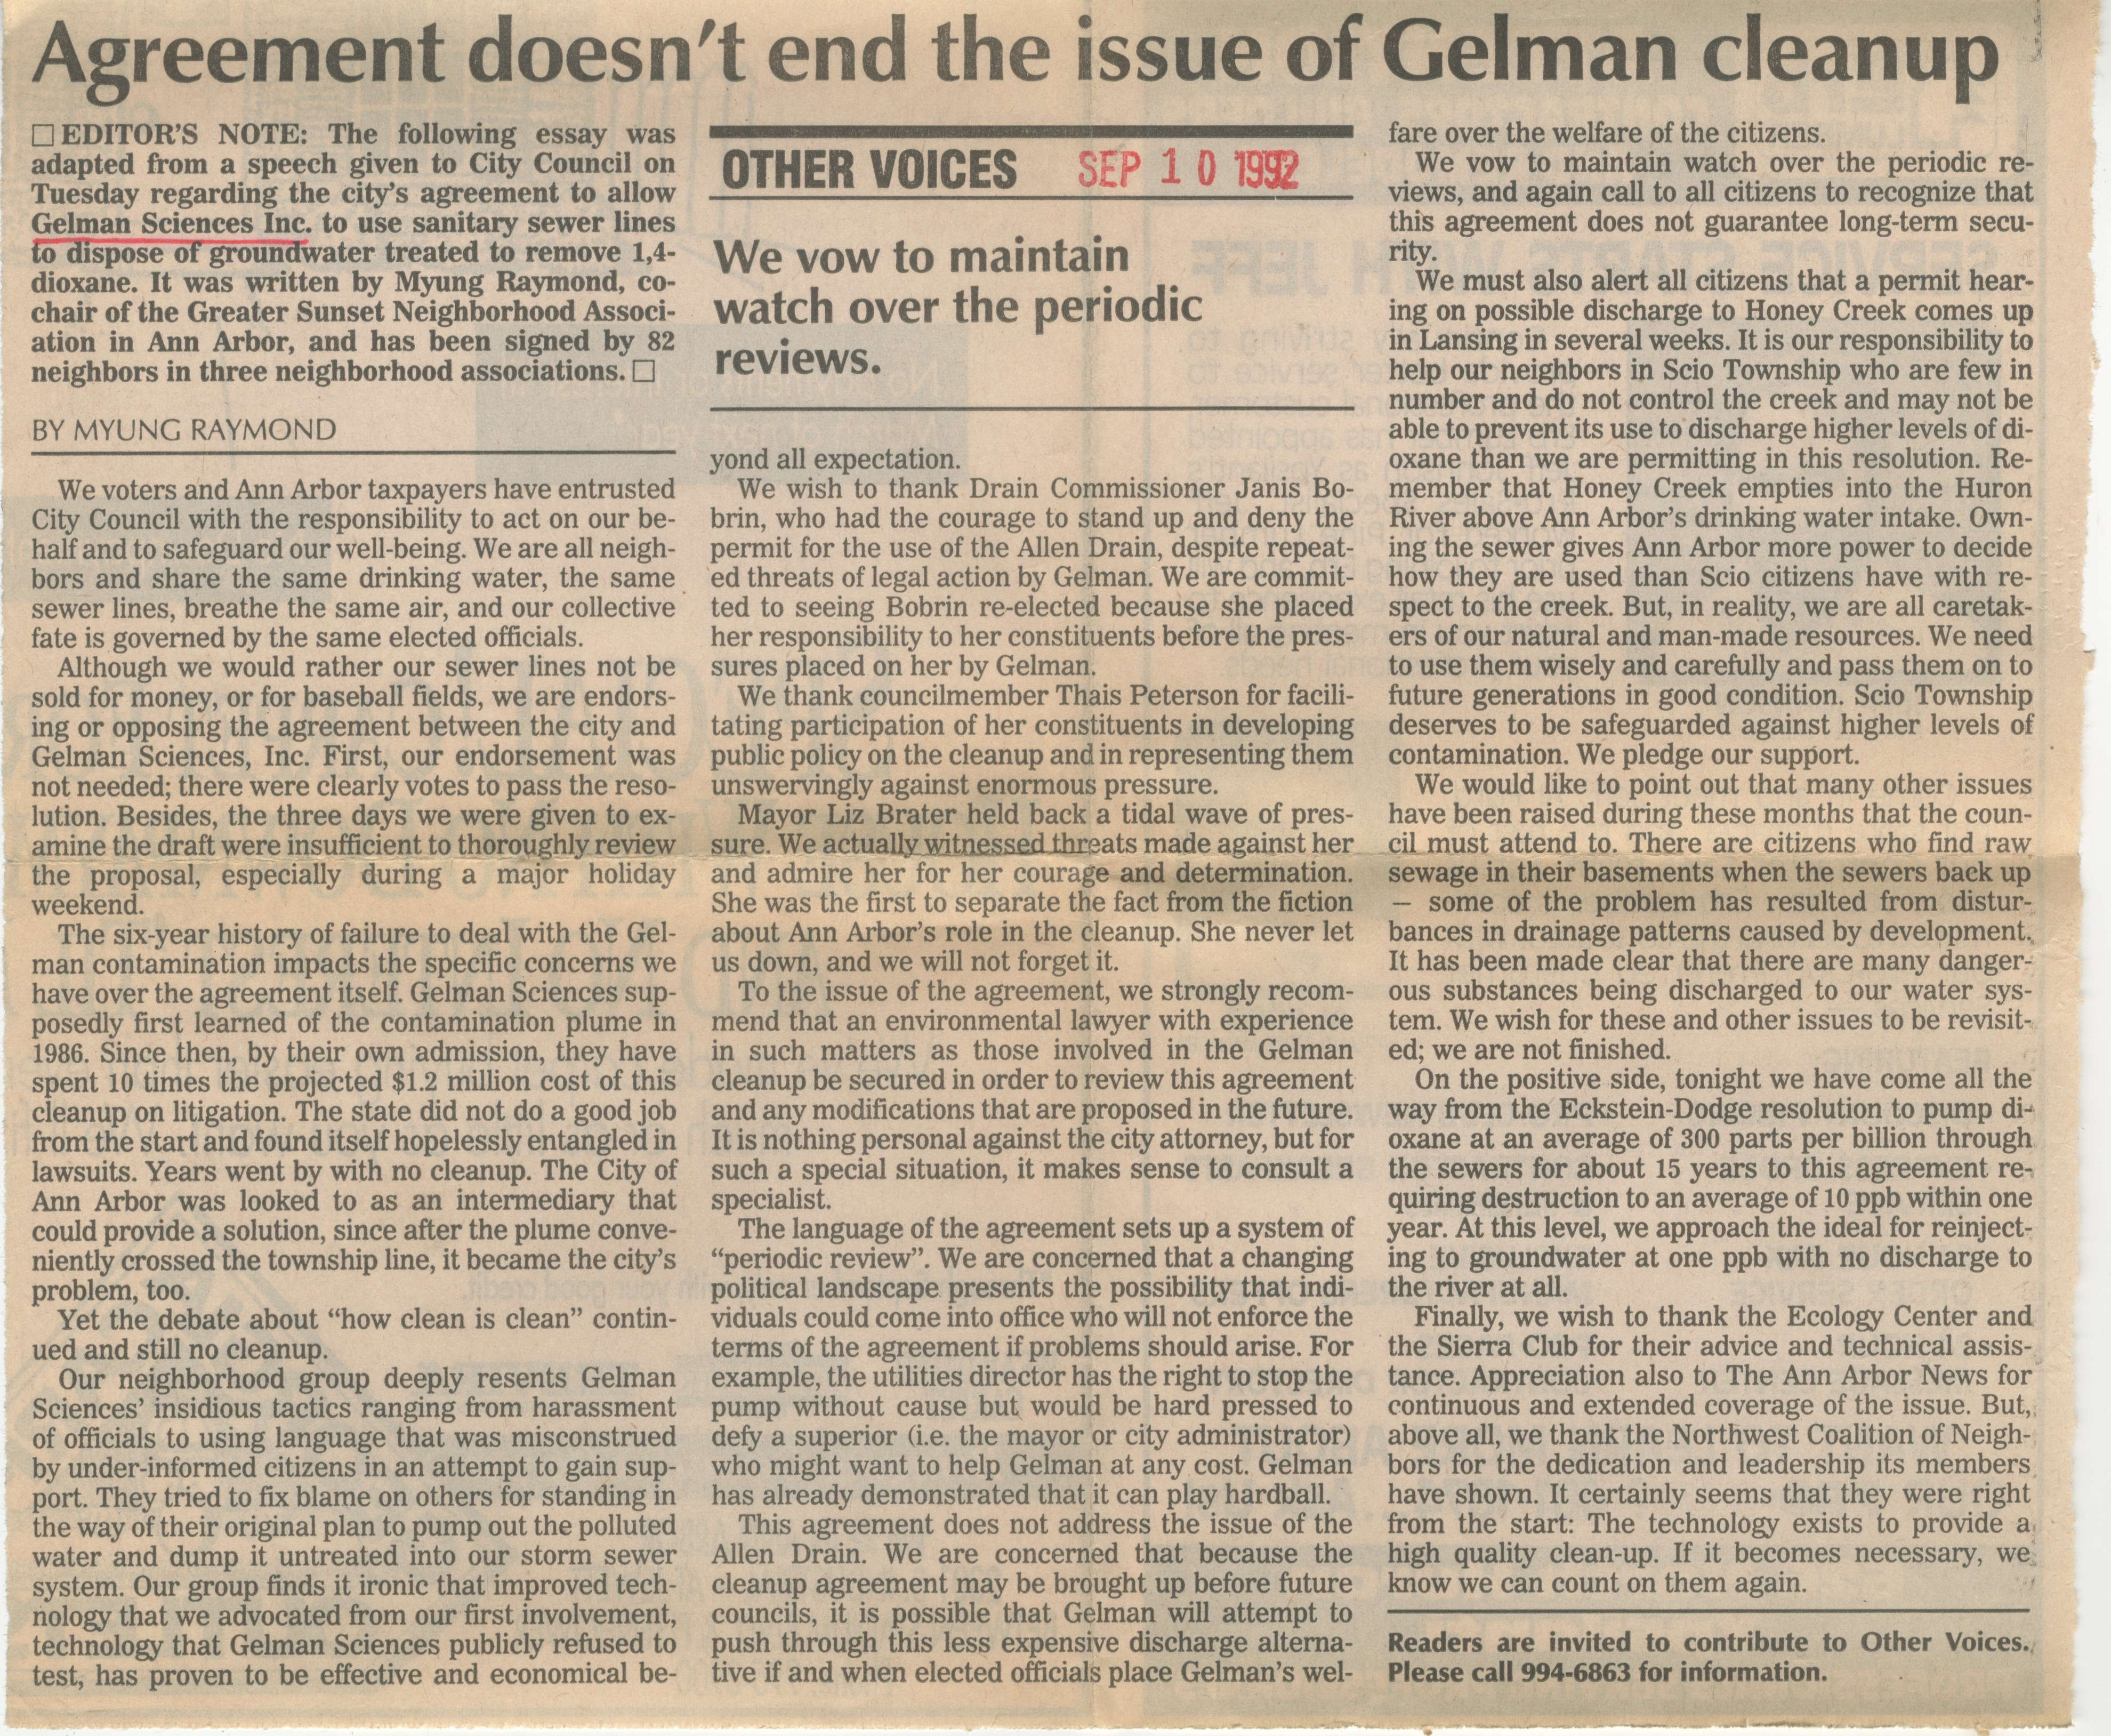 Agreement doesn't end the issue of Gelman cleanup image